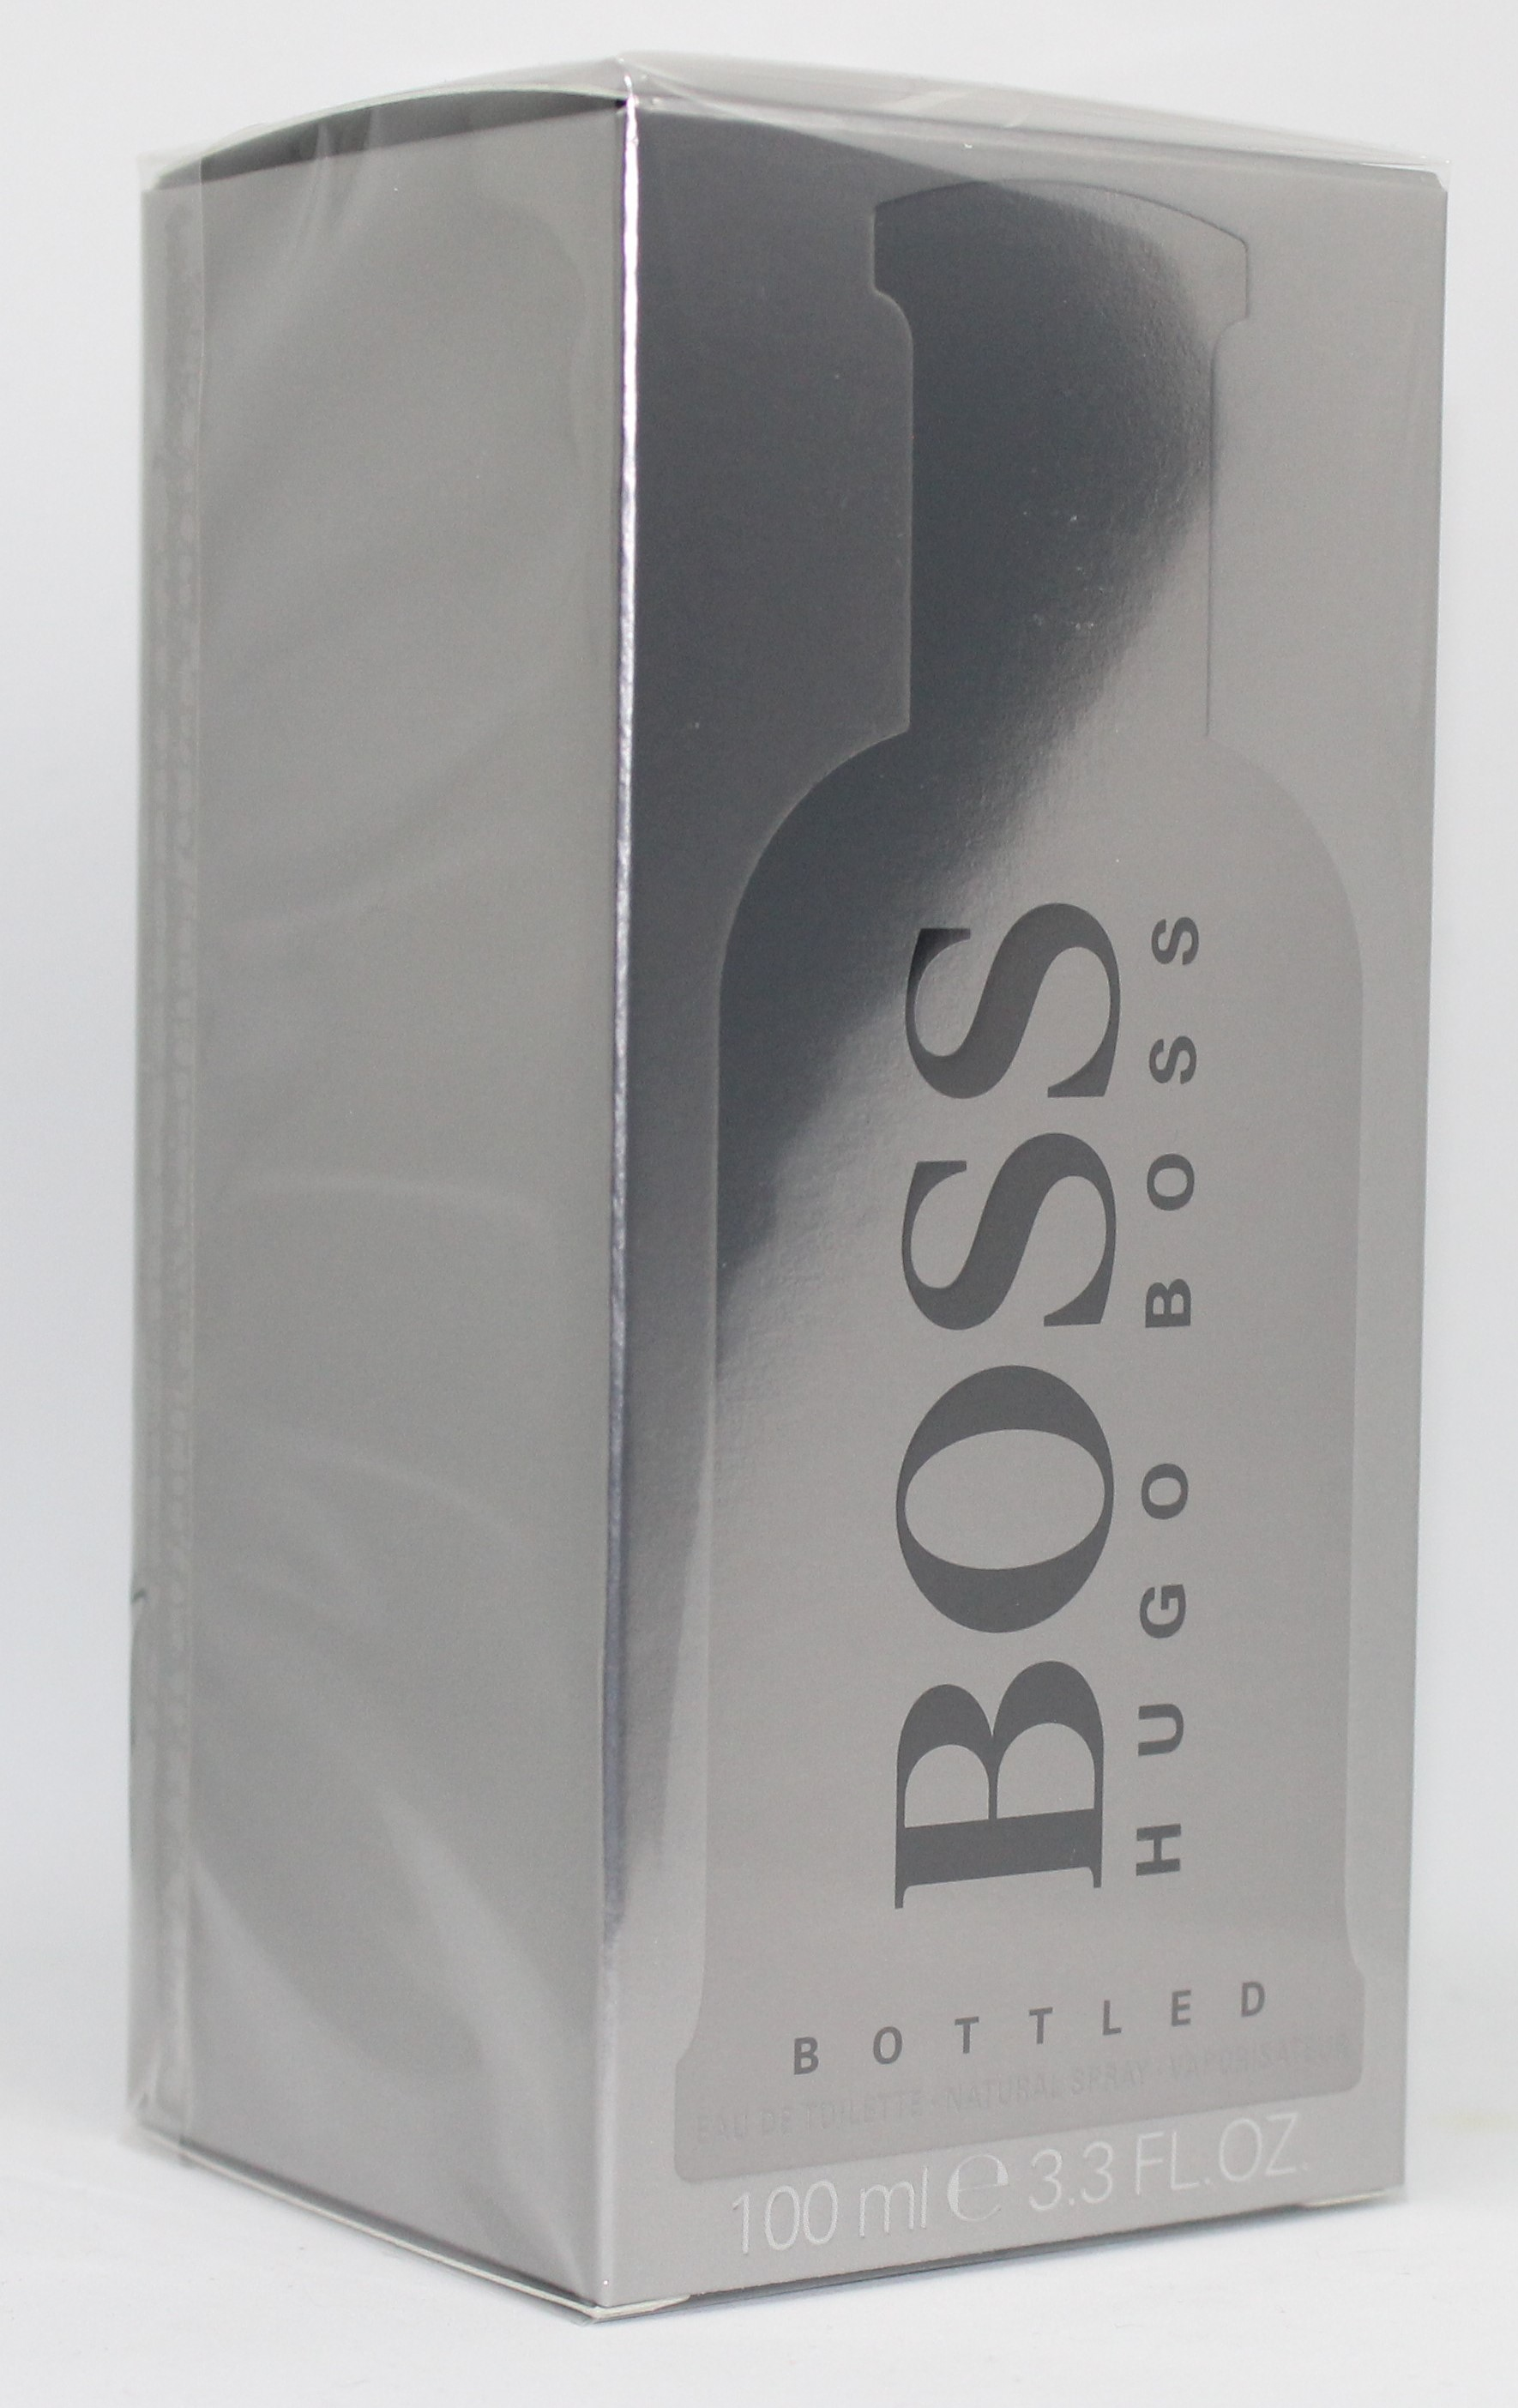 Hugo Boss Bottled 100 ml Eau de Toilette